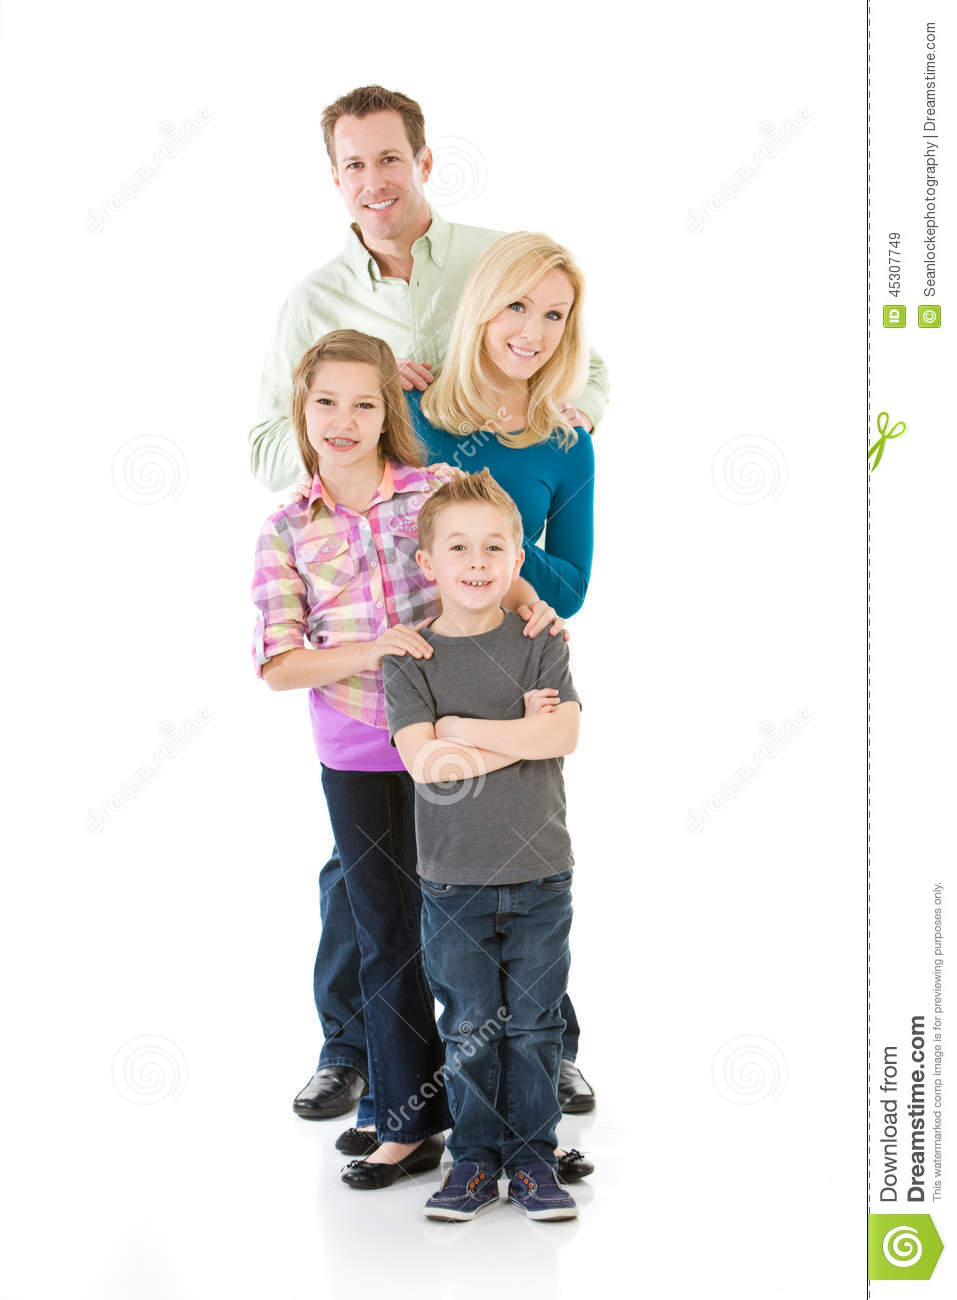 traditional nuclear family Traditional nuclear family households are now less common compared to household with couples without children, single-parent families, and unmarried couples with children.